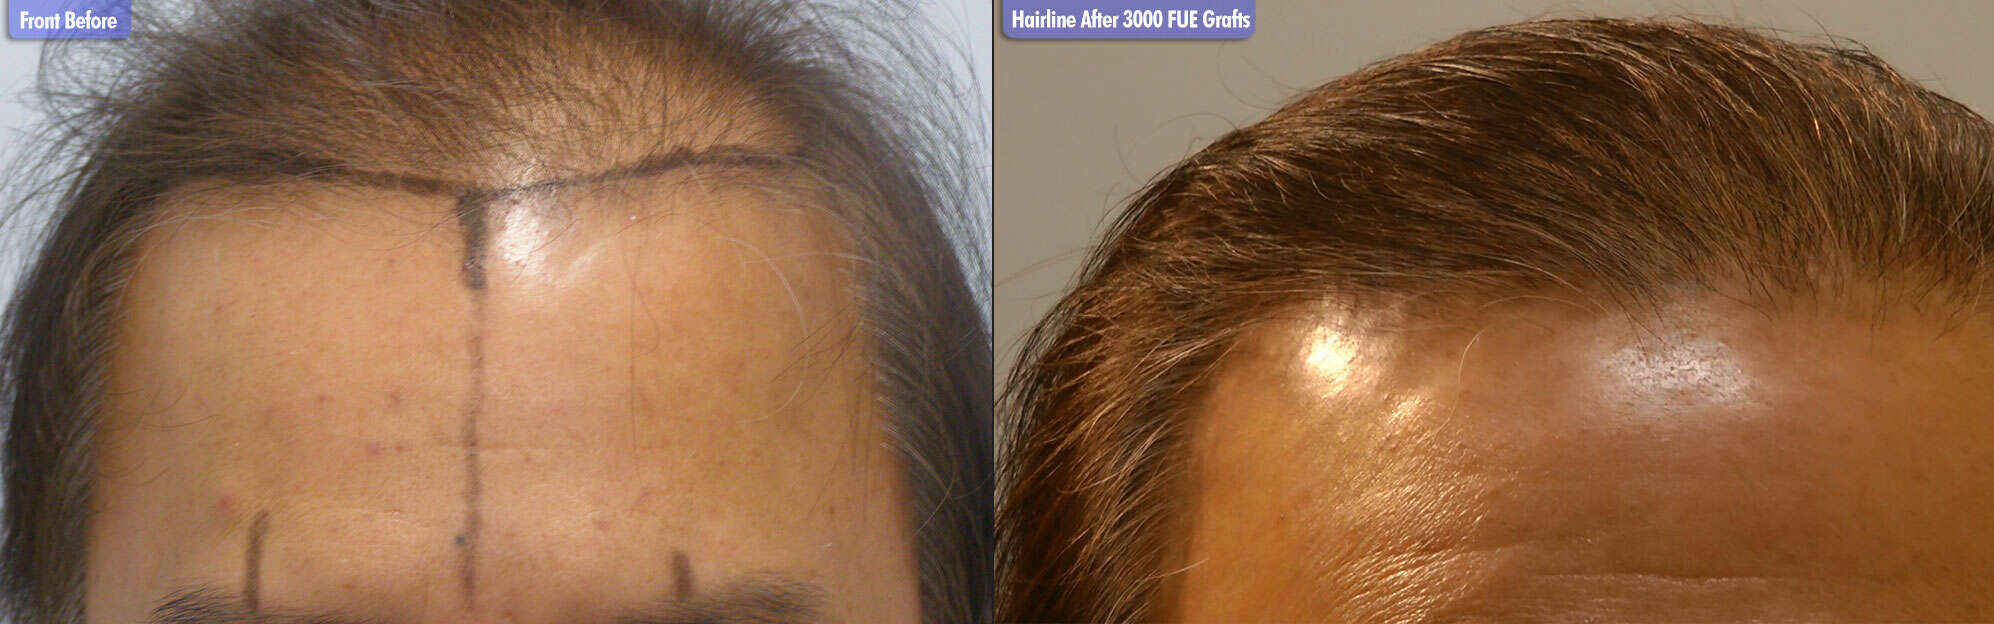 Diffuse Thinning Before & After 3000 FUE Grafts  Hairline